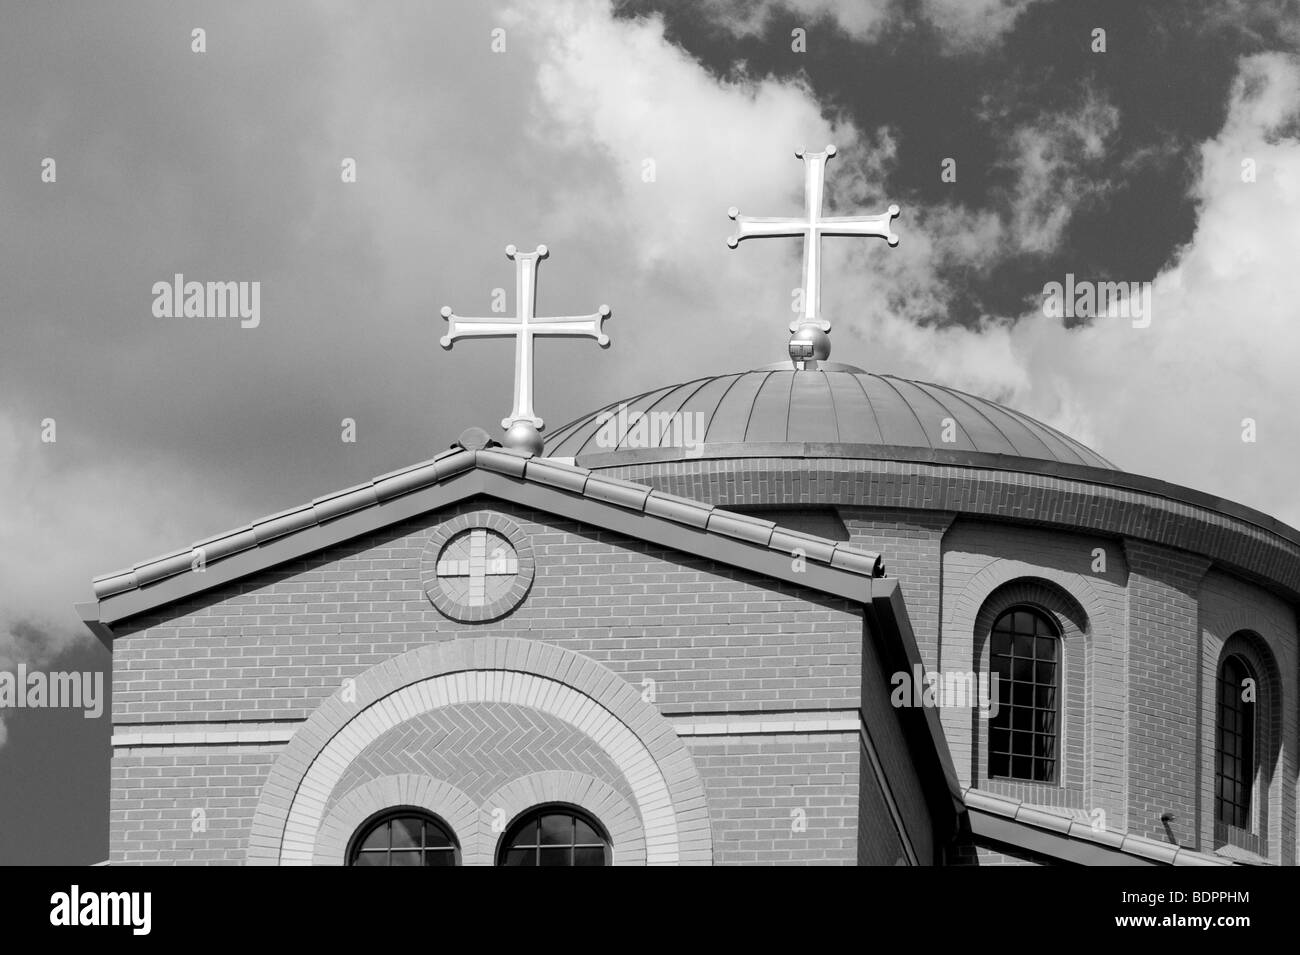 A church with two crosses - Stock Image